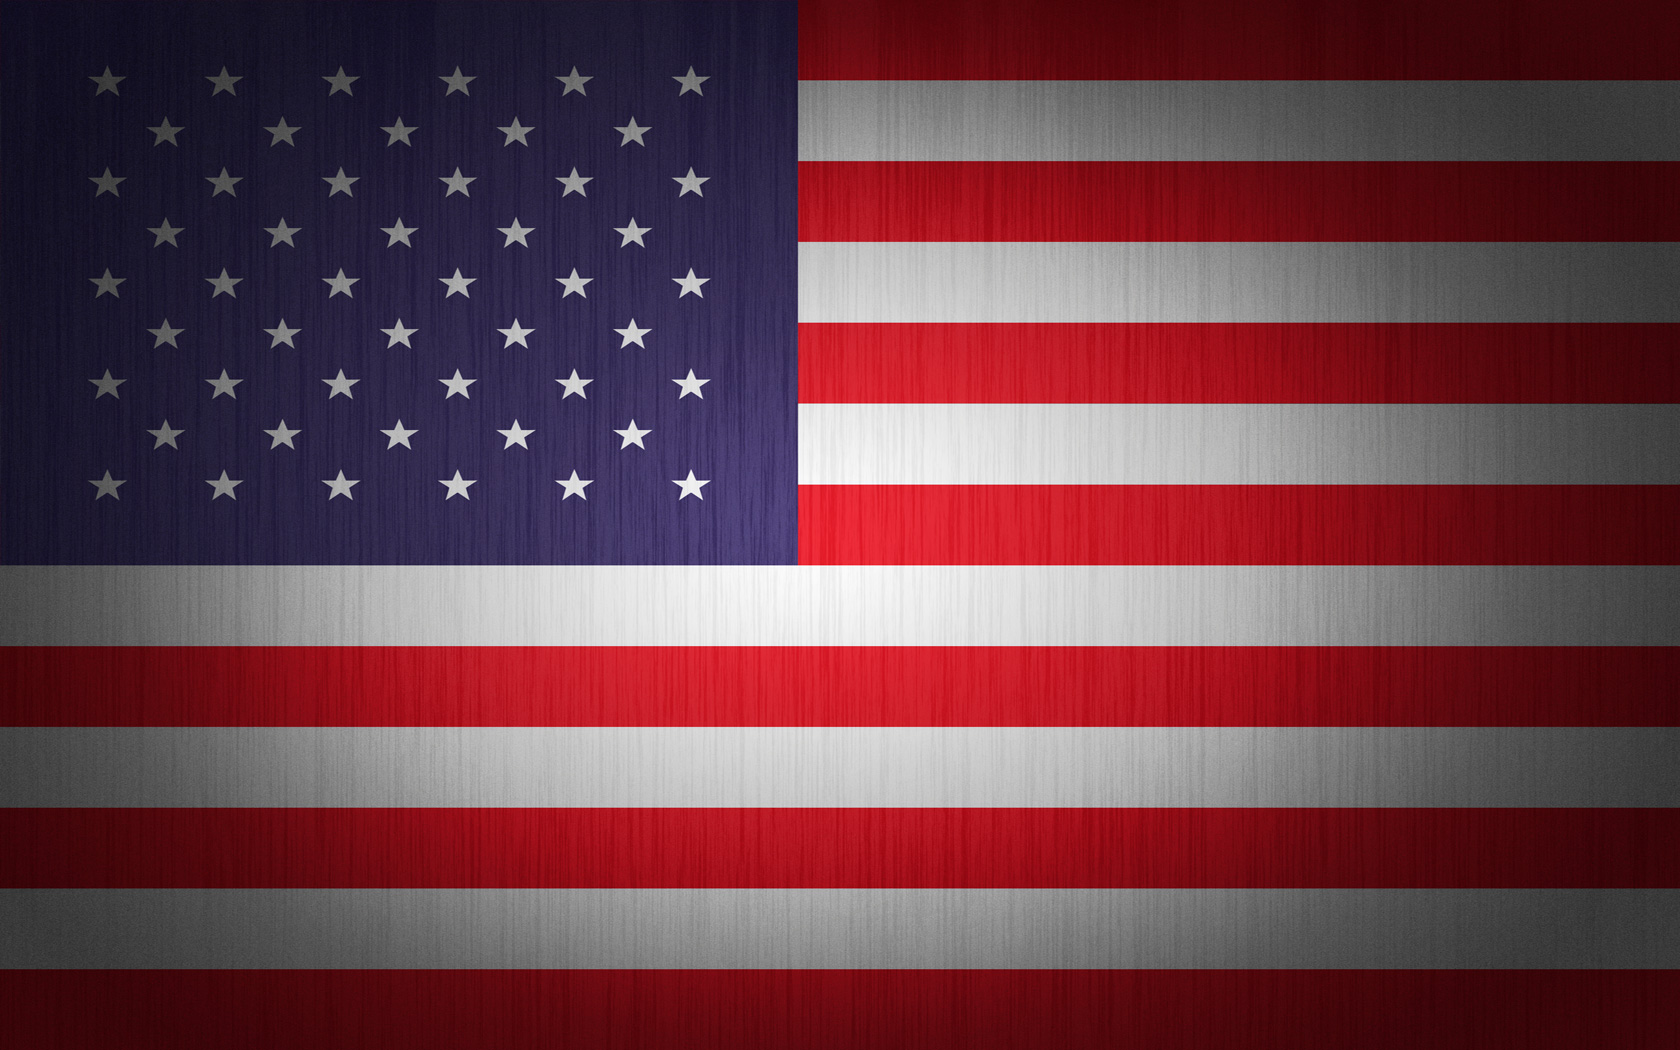 United States Flag Wallpaper Hd Wallpapers Collection 1680x1050